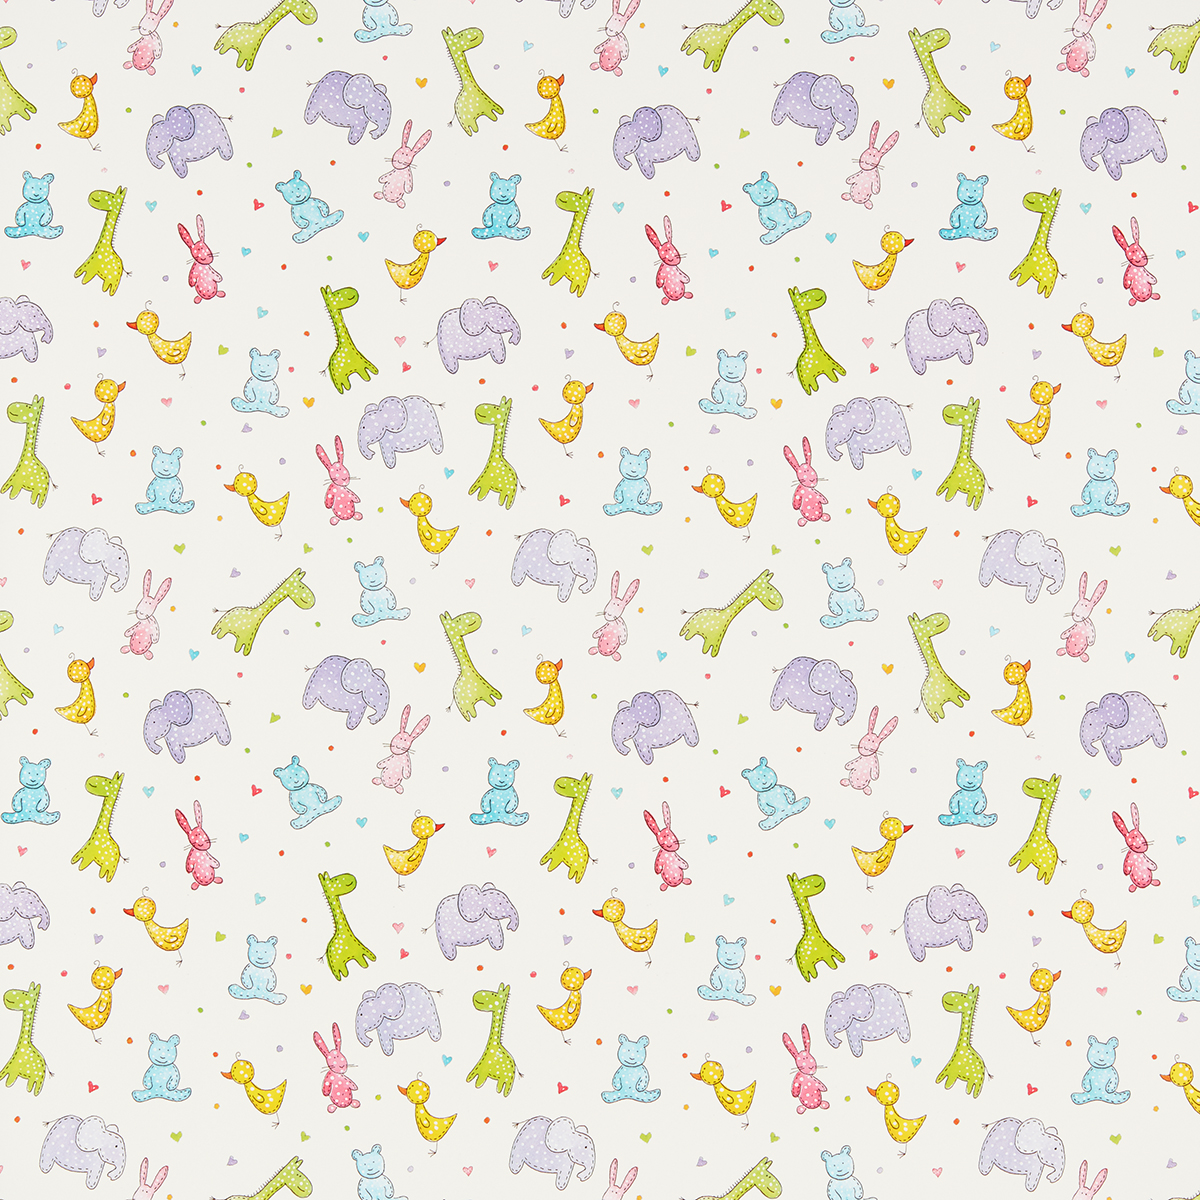 Animal Kwackers Wrapping Paper Sheets